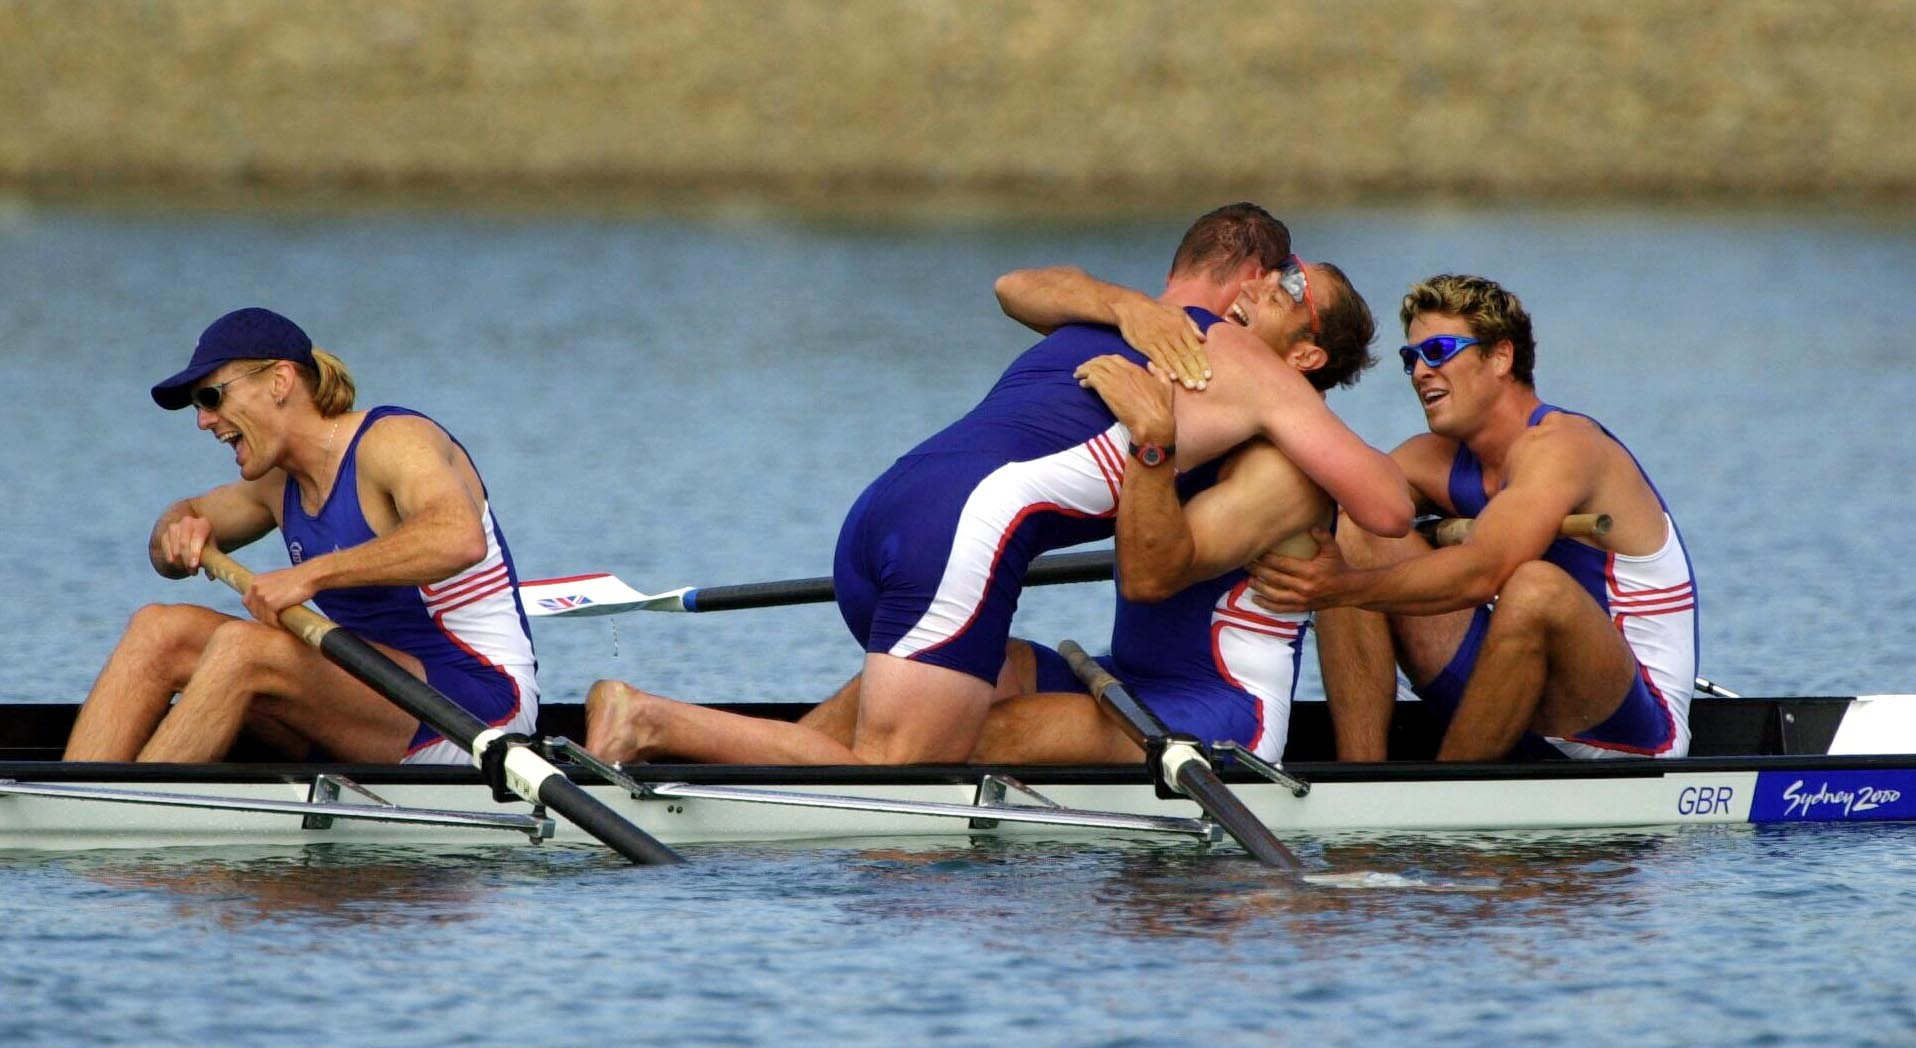 Great Britain rowers (left to right) Tim Foster, Matthew Pinsent, Steve Redgrave, and James Cracknell celebrate after winning the Gold Medal in the Men's Coxless Four Final at the Olympic Games in Sydney in 2000 (Toby Melville/PA)